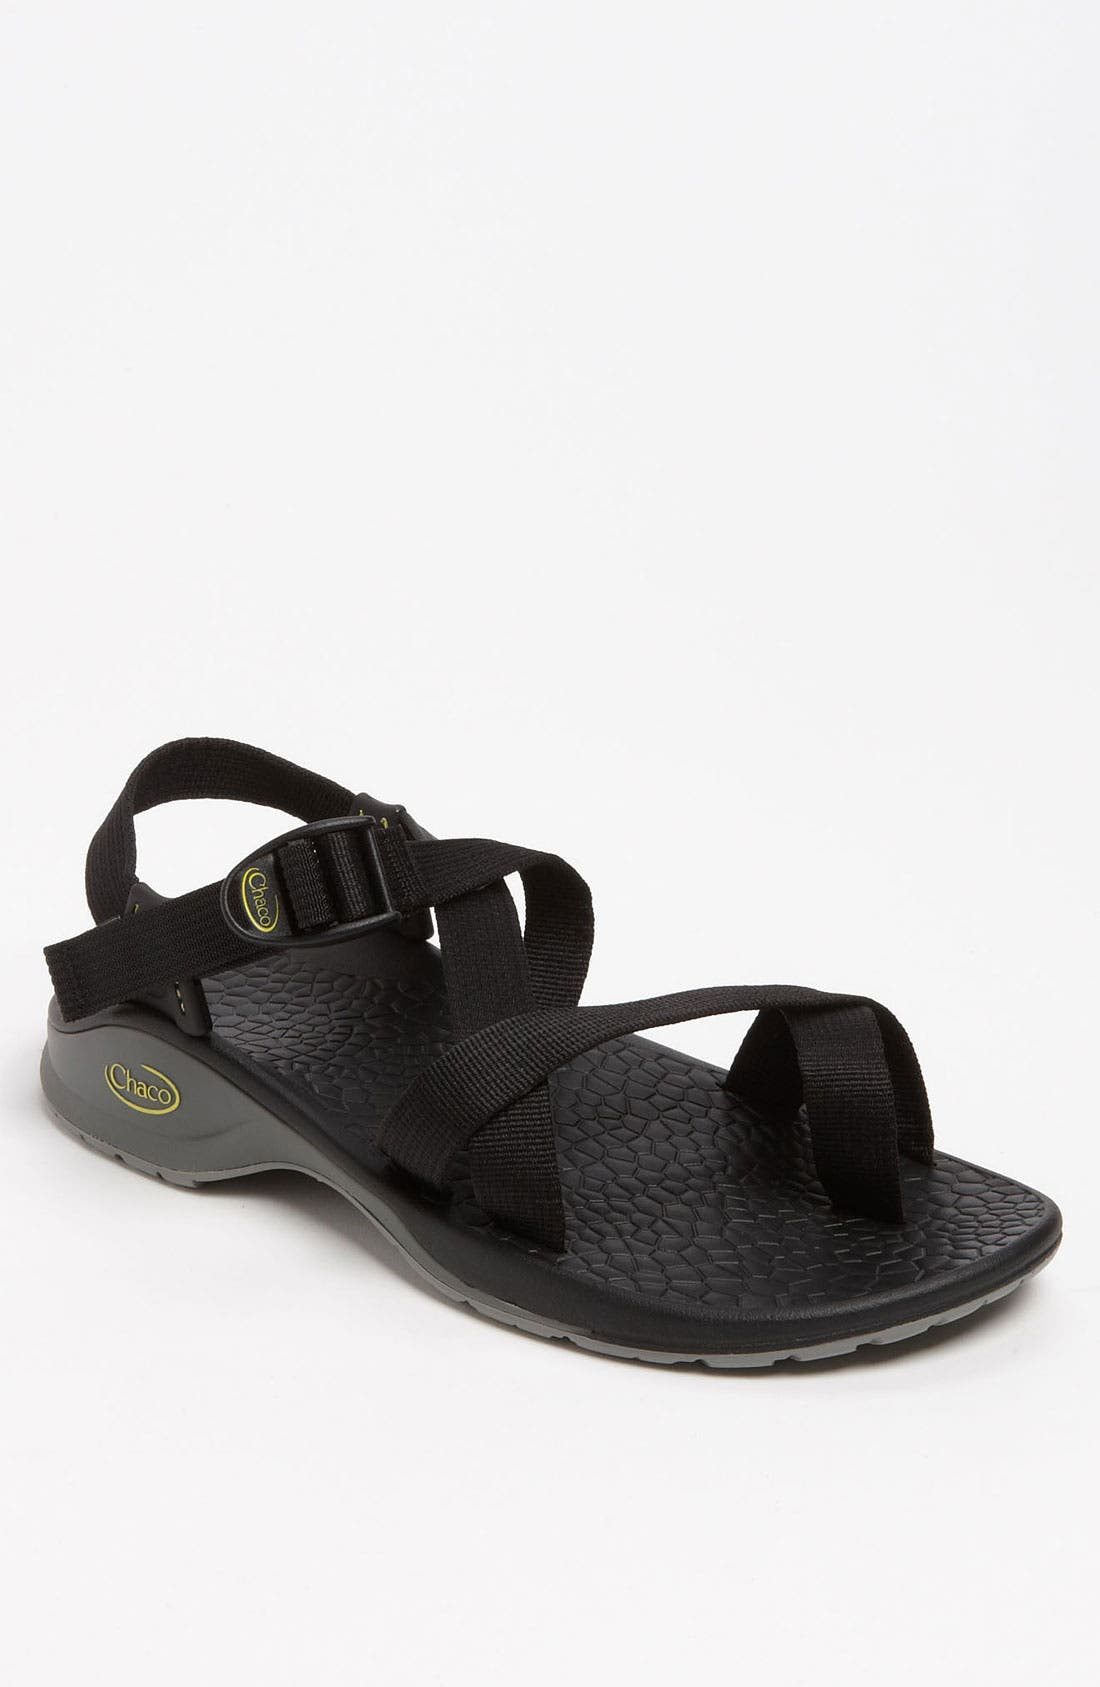 Alternate Image 1 Selected - Chaco 'Updraft 2' Sandal